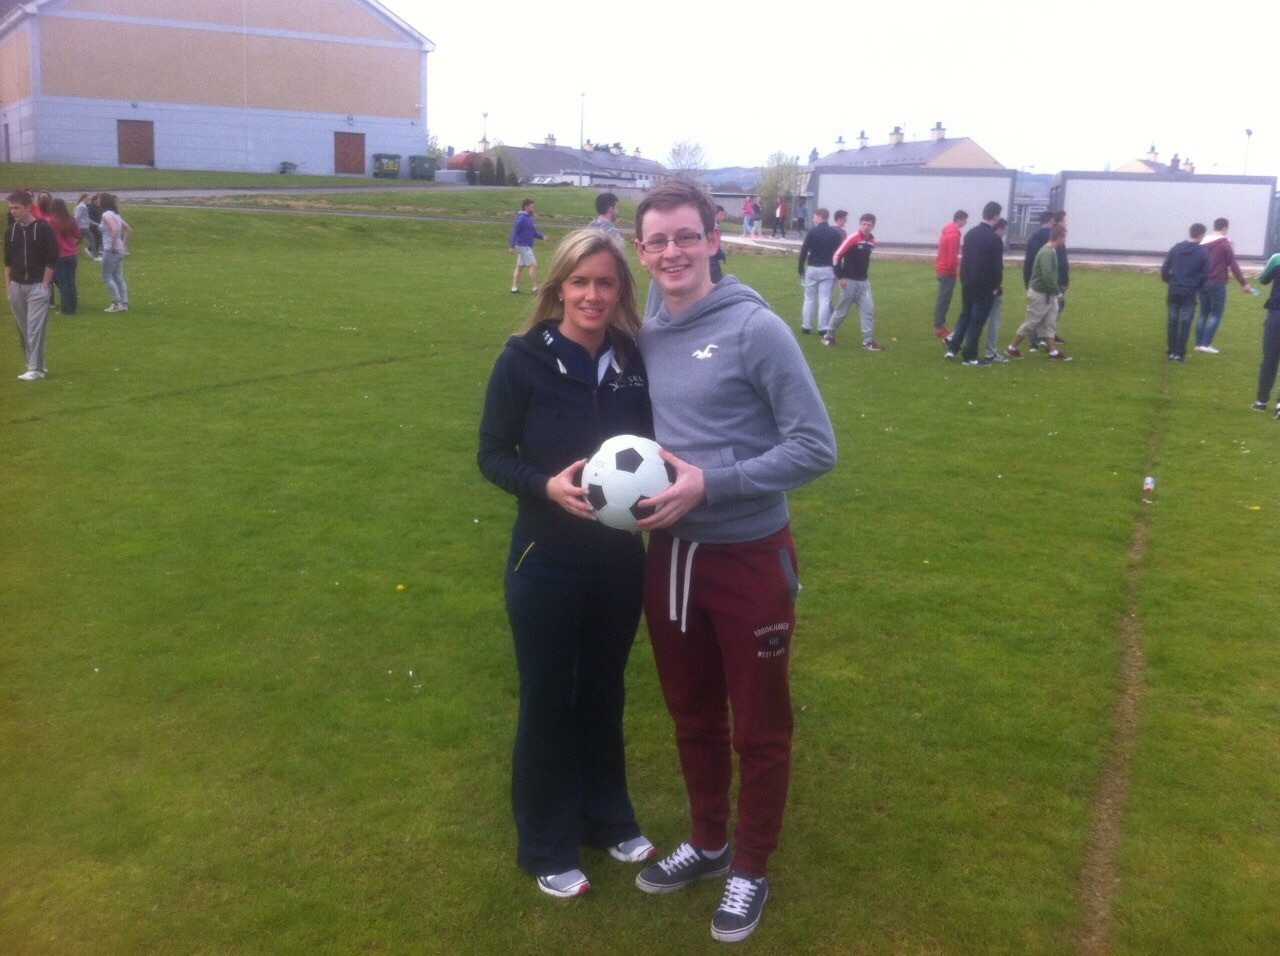 Sean Duffy: the winner of the penalty shoot out with Ms Quaid, Desmond College